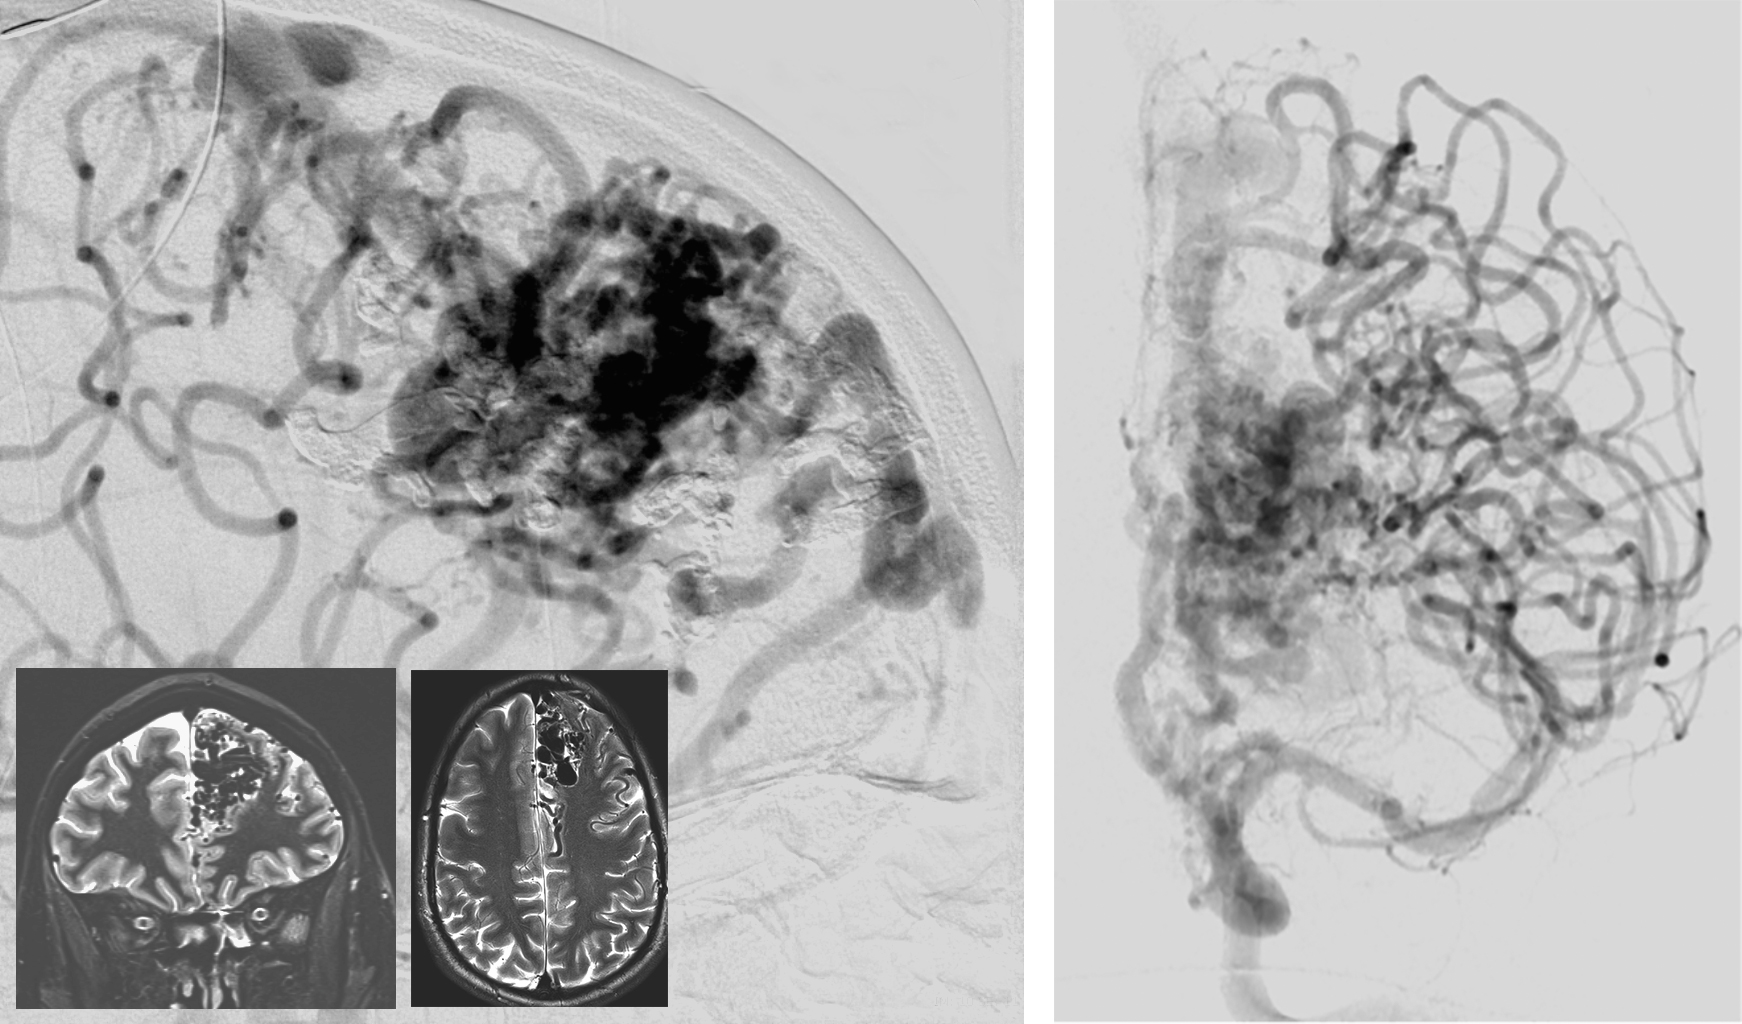 Figure 11: An anterior paramedian frontal AVM, fed by both the MCA and ACA feeders, is demonstrated. Note that there are numerous artery-to-artery connections at the posterior aspect of the nidus. These connections are not considered part of the nidus are should be left intact.